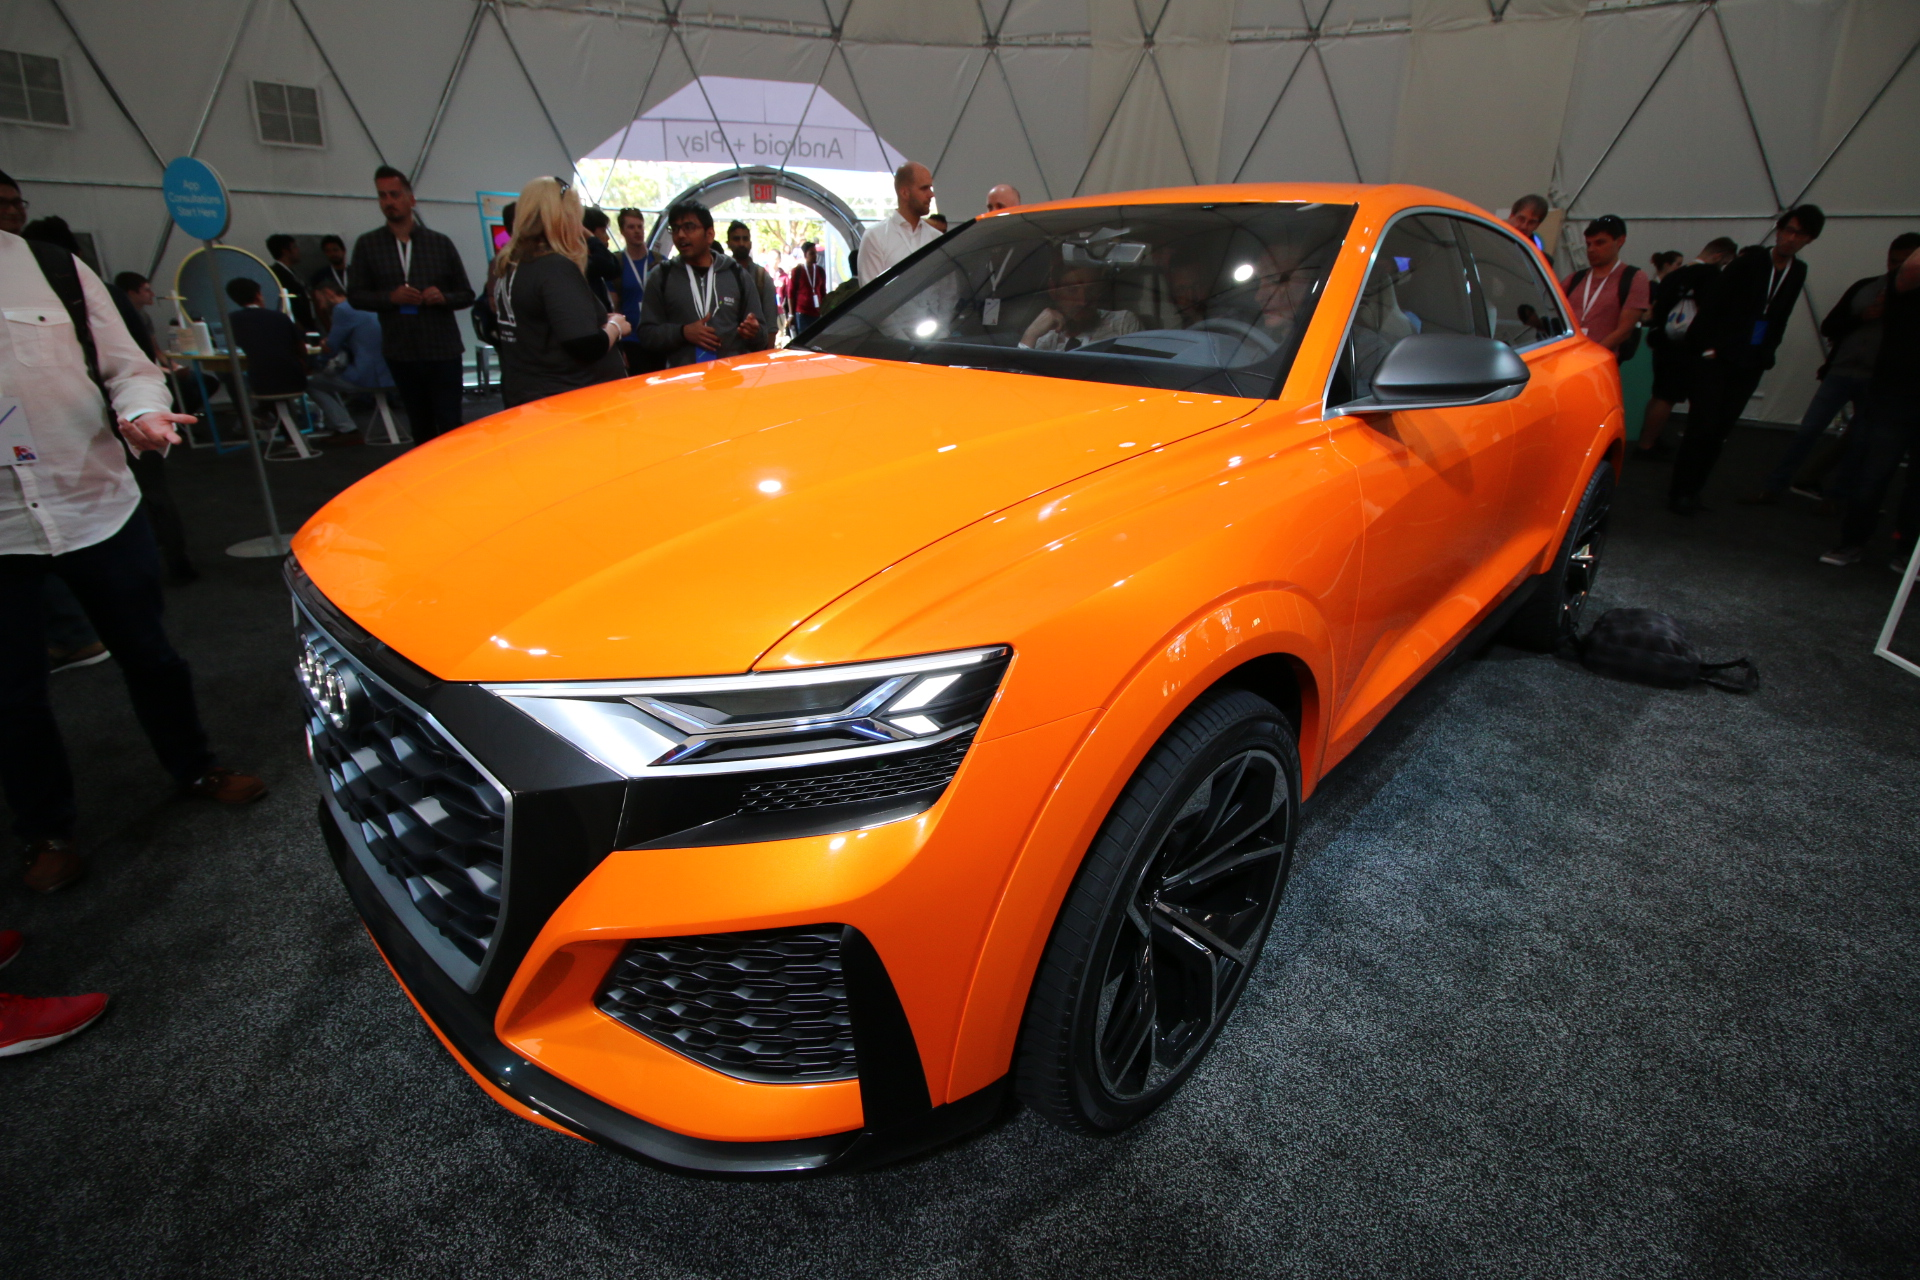 This Cool Audi Concept Car Has Android Fully Integrated VIDEO - Google audi car